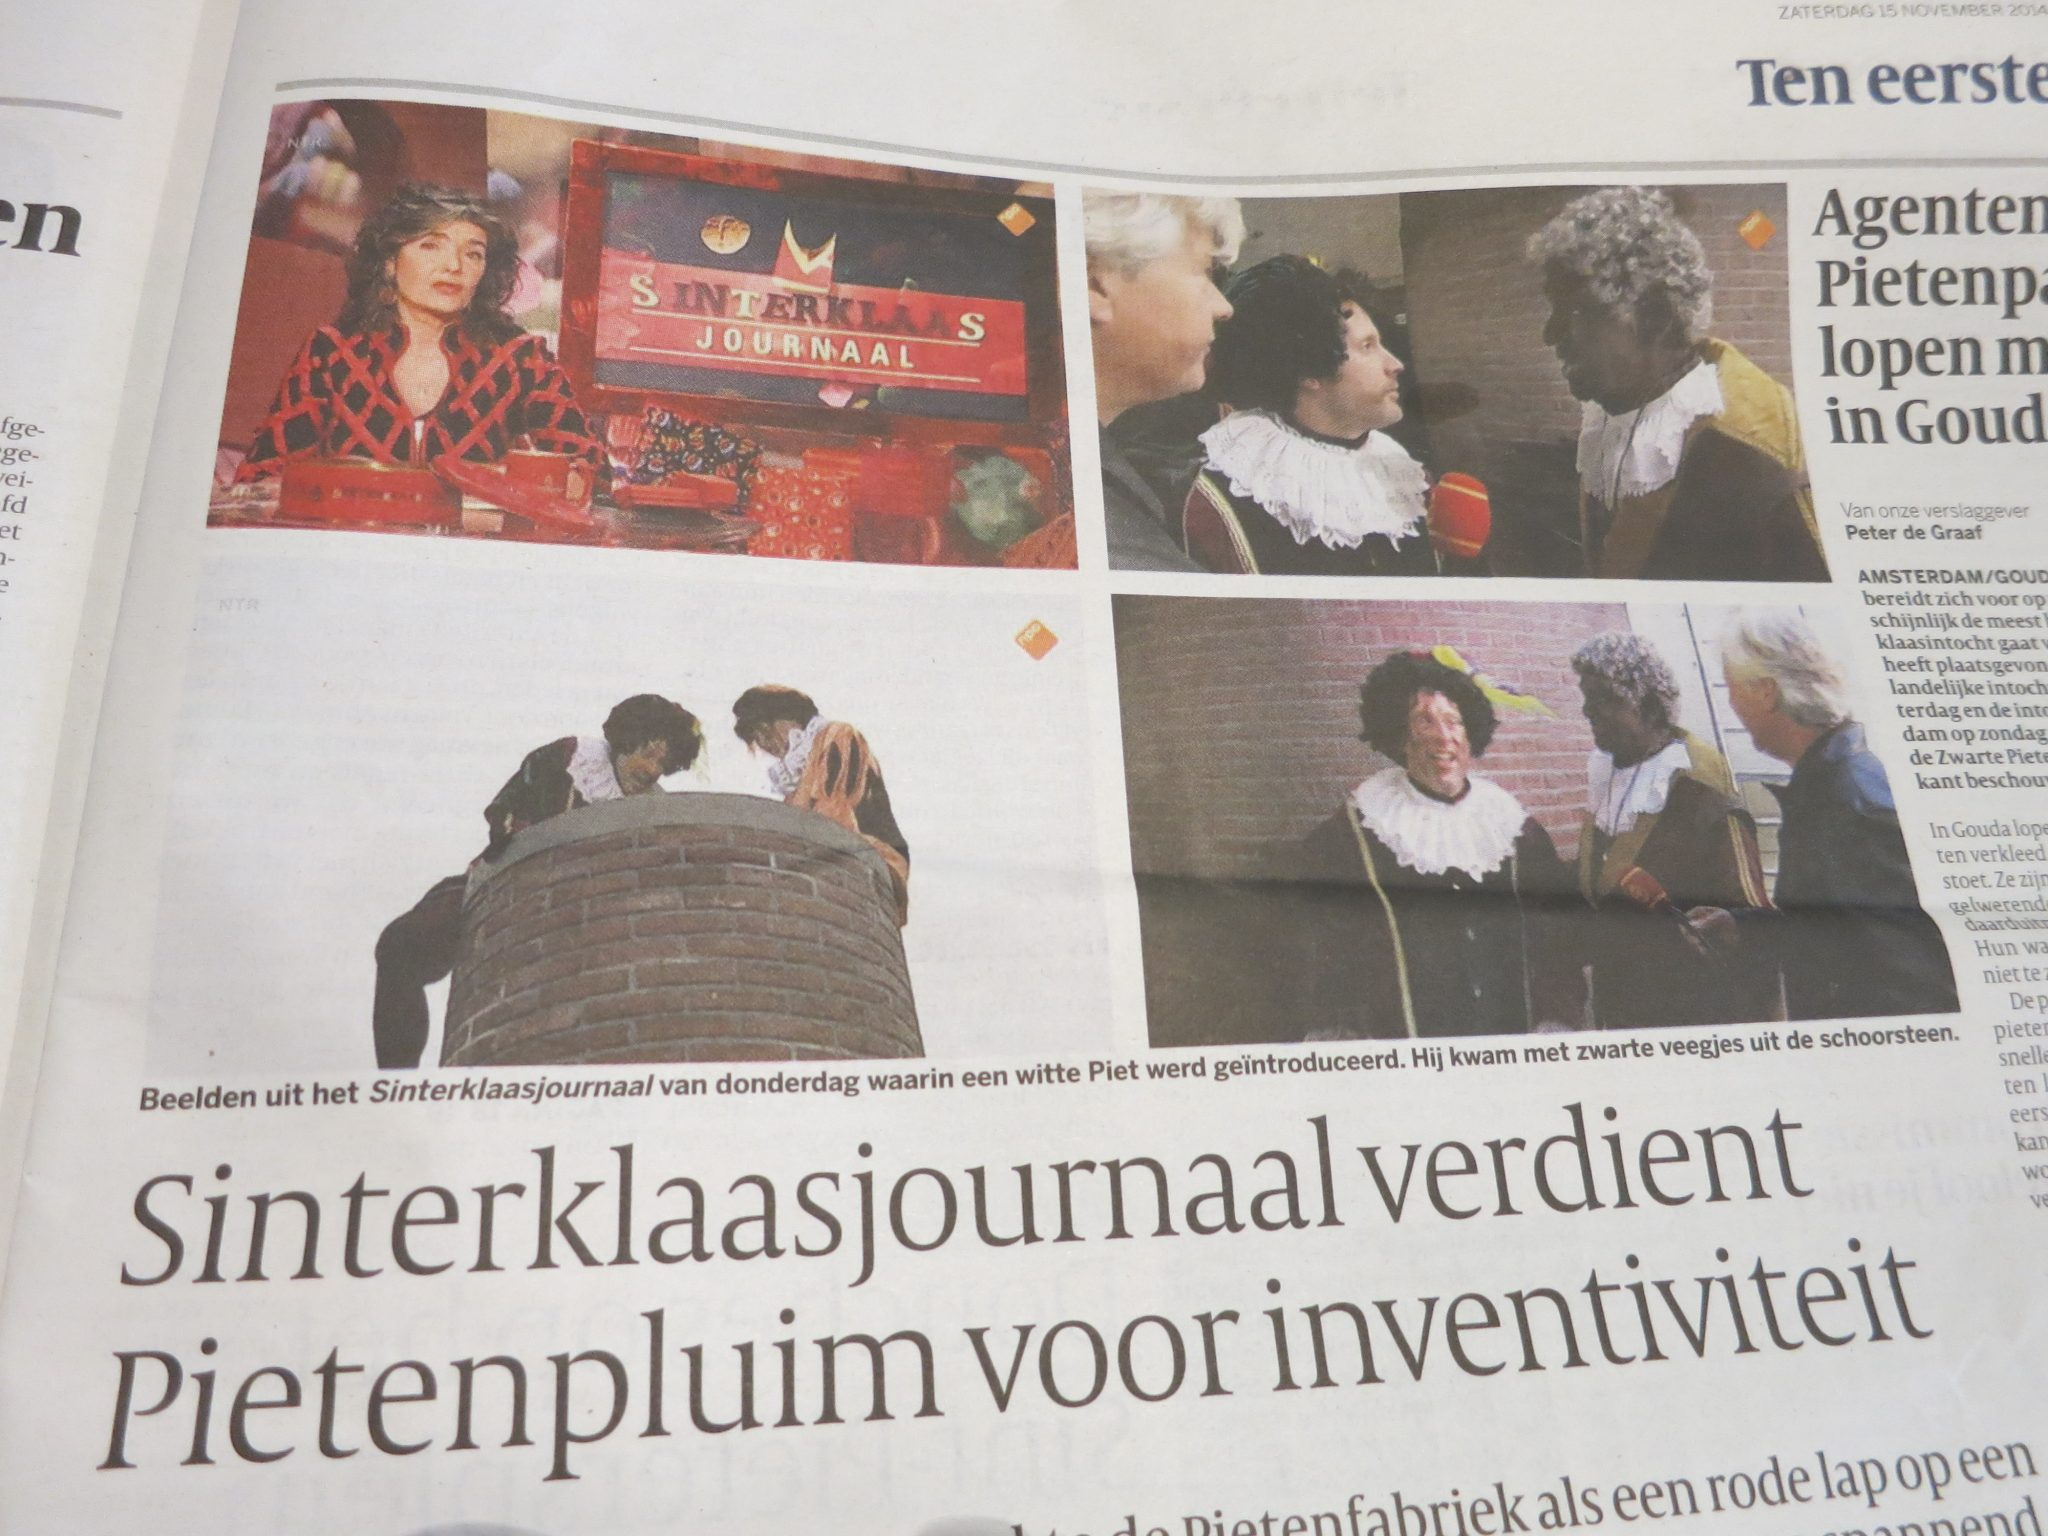 newspaper article about the Sinterklaas news program